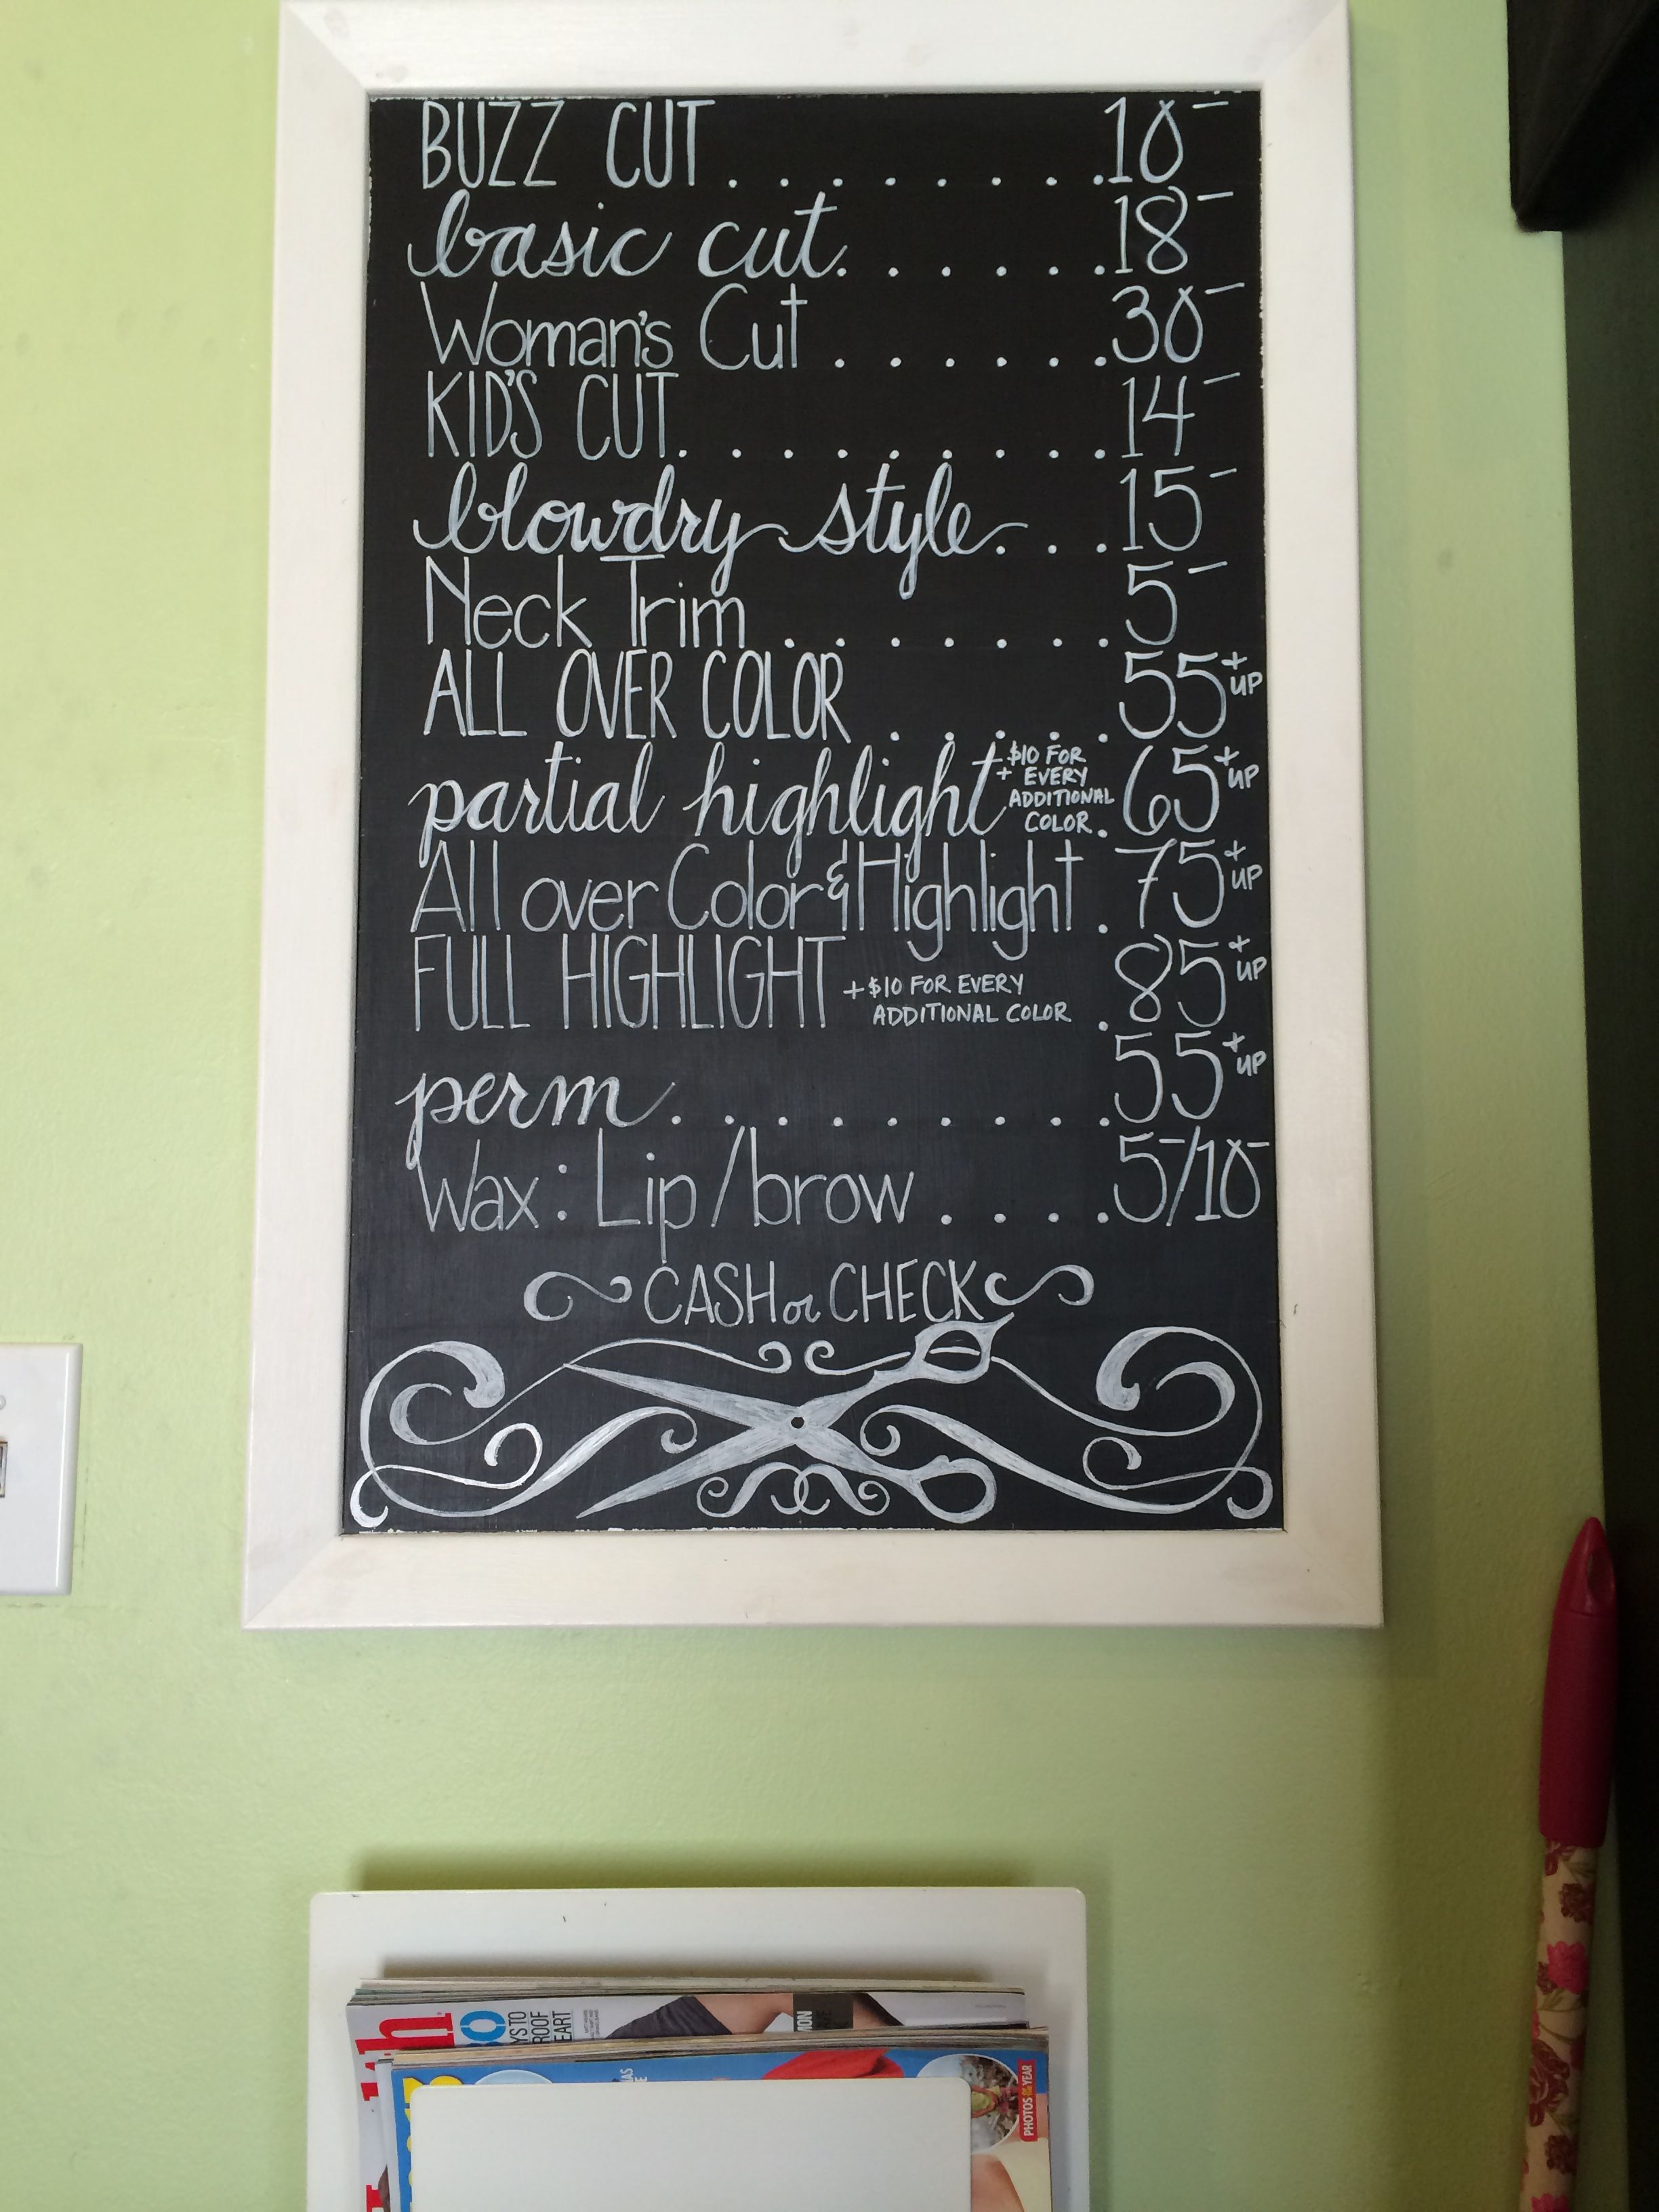 Hair Salon Chalkboard Price Sign Chico Chalk And